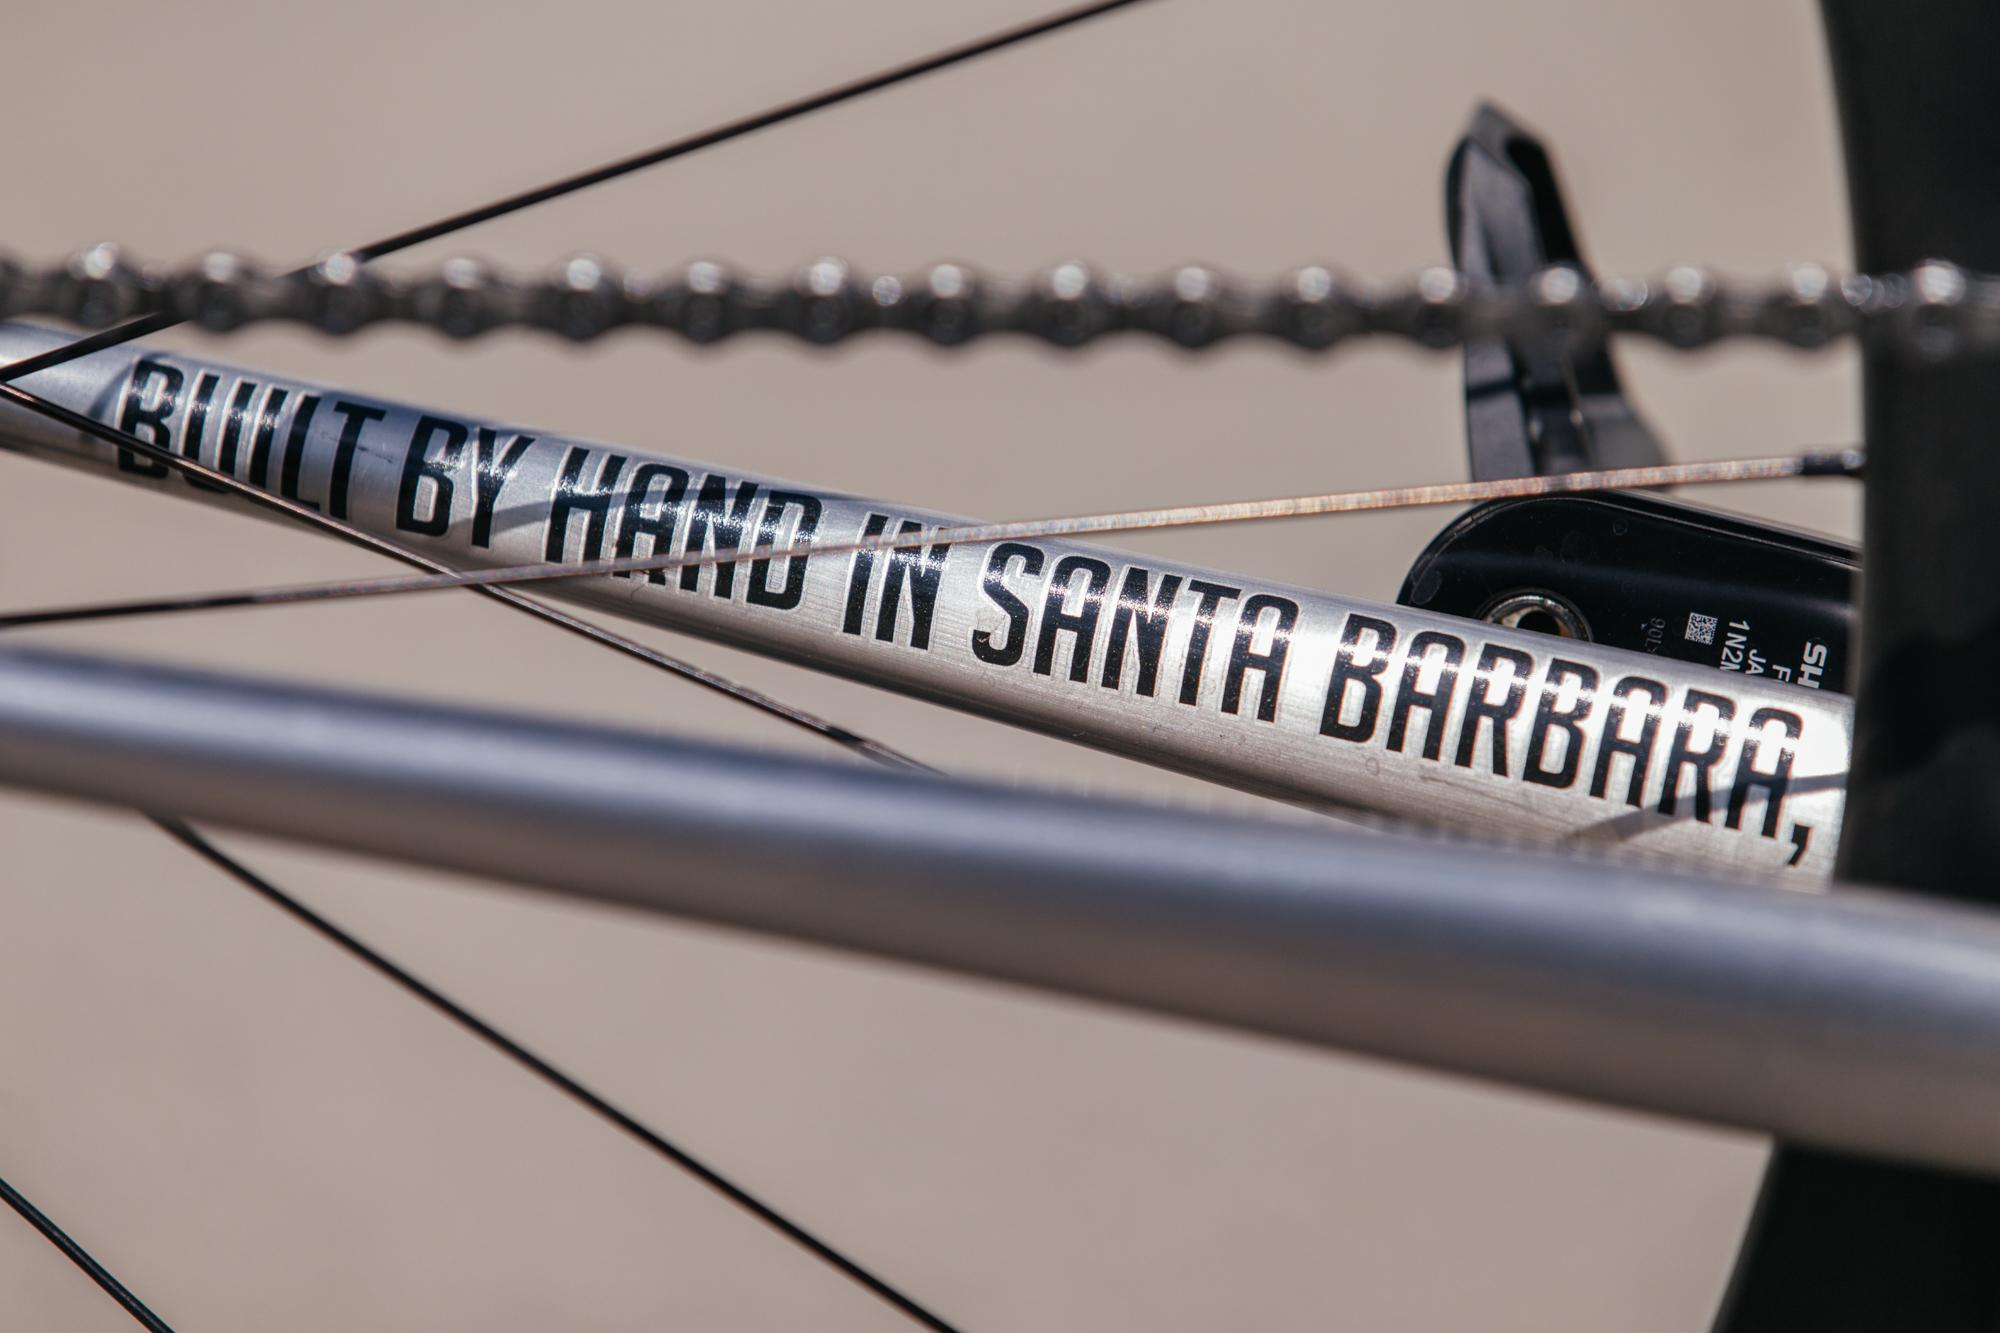 Death Spray StainMorgan's Death Spray Stinner Frameworks Stainless Road